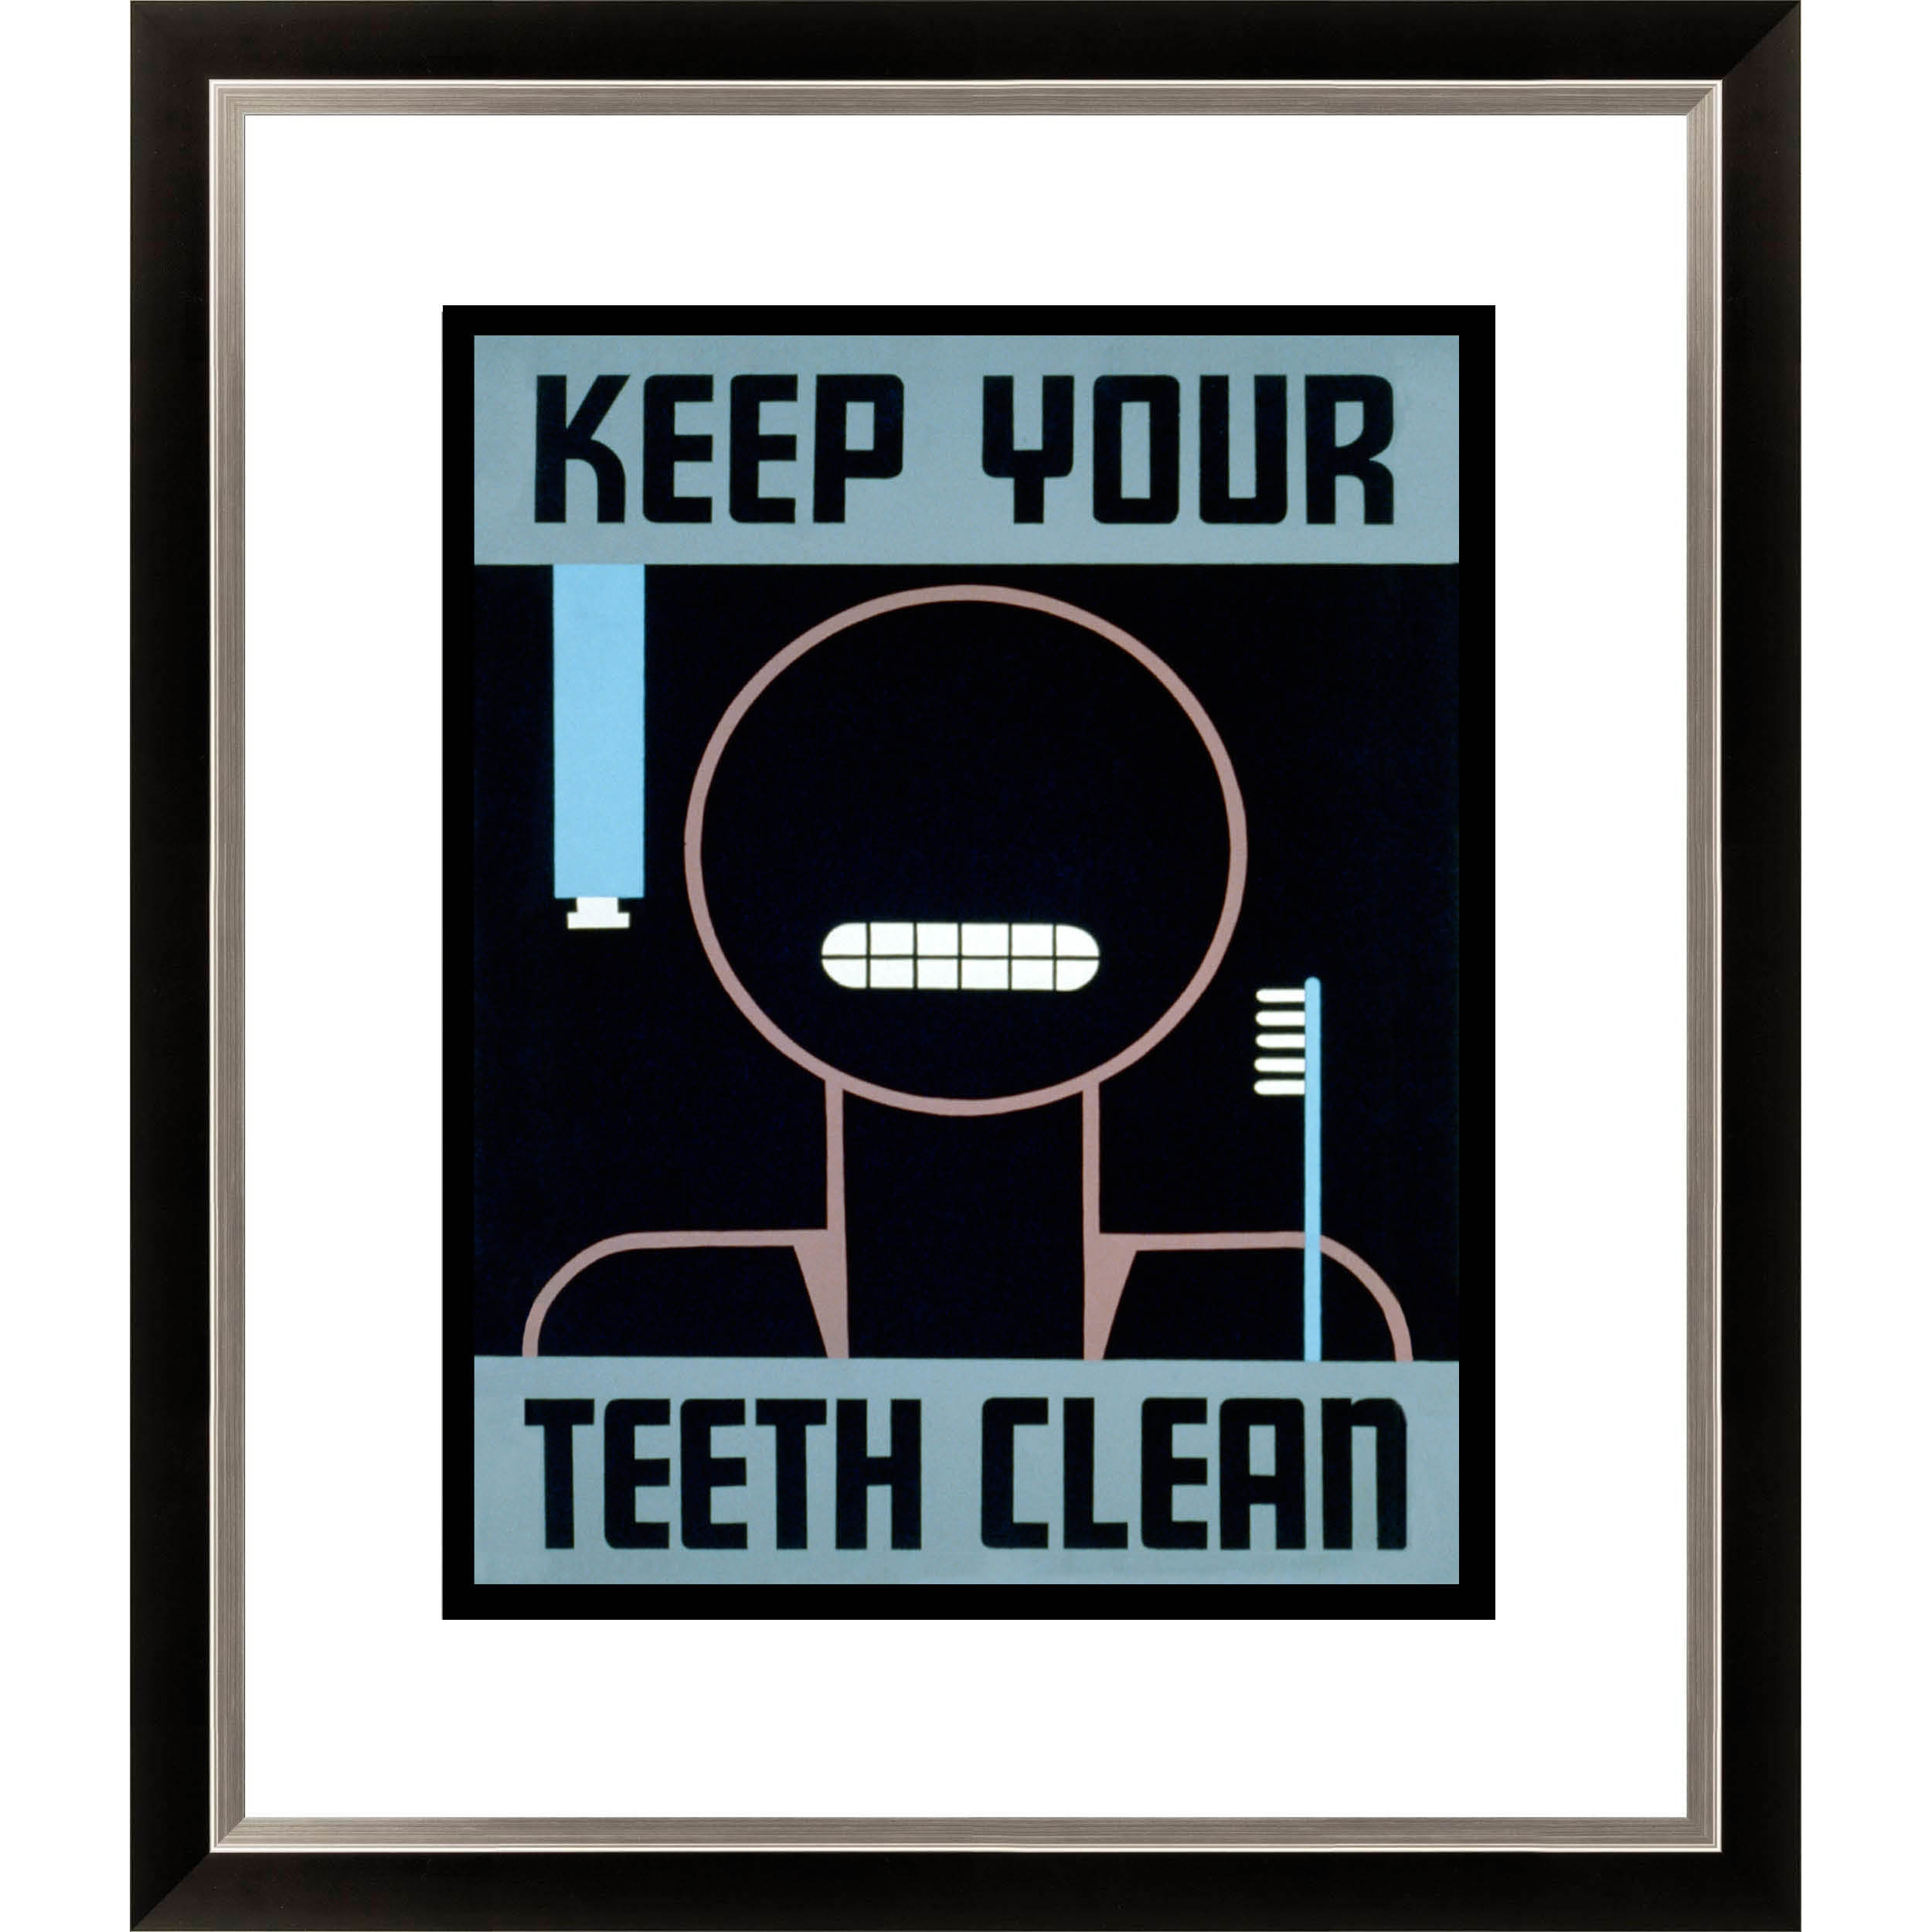 Gallery Direct 'Keep Your Teeth Clean' Framed Limited Edition Giclee